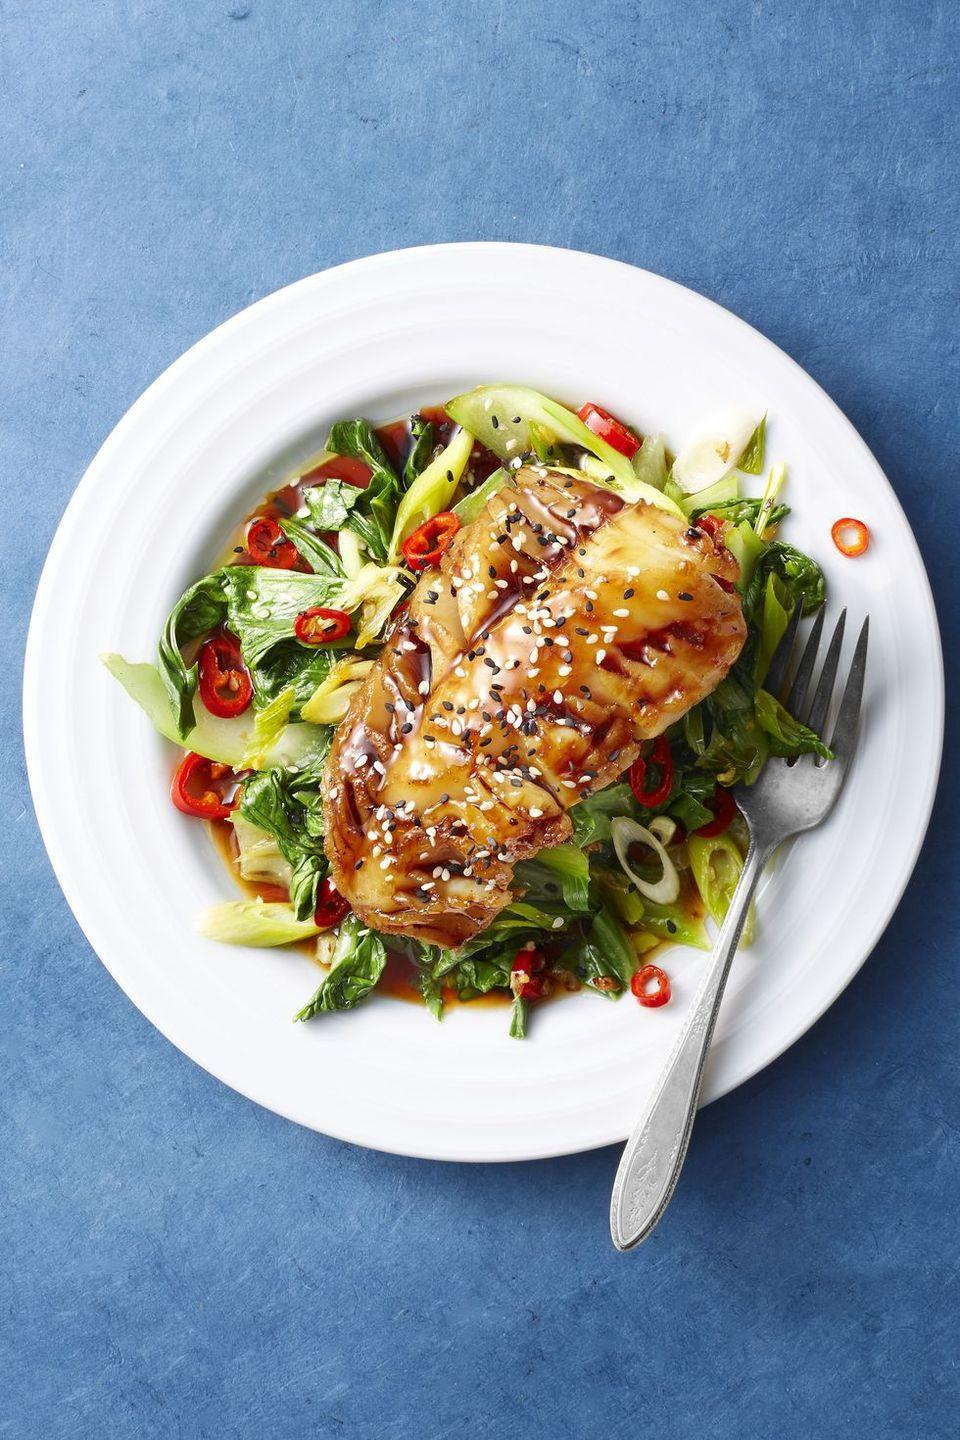 """<p>Tender cod fillets can be broiled to perfection in just seven minutes. But you'll be amazed by this sweet glaze that comes together in 60 seconds (<a href=""""https://www.goodhousekeeping.com/food-recipes/g33484904/microwave-recipes/"""" rel=""""nofollow noopener"""" target=""""_blank"""" data-ylk=""""slk:thanks to your microwave!"""" class=""""link rapid-noclick-resp"""">thanks to your microwave!</a>).</p><p><em><a href=""""https://www.goodhousekeeping.com/food-recipes/easy/a46651/soy-glazed-cod-and-bok-choy-recipe/"""" rel=""""nofollow noopener"""" target=""""_blank"""" data-ylk=""""slk:Get the recipe for Soy-Glazed Cod and Bok Choy »"""" class=""""link rapid-noclick-resp"""">Get the recipe for Soy-Glazed Cod and Bok Choy »</a></em></p>"""